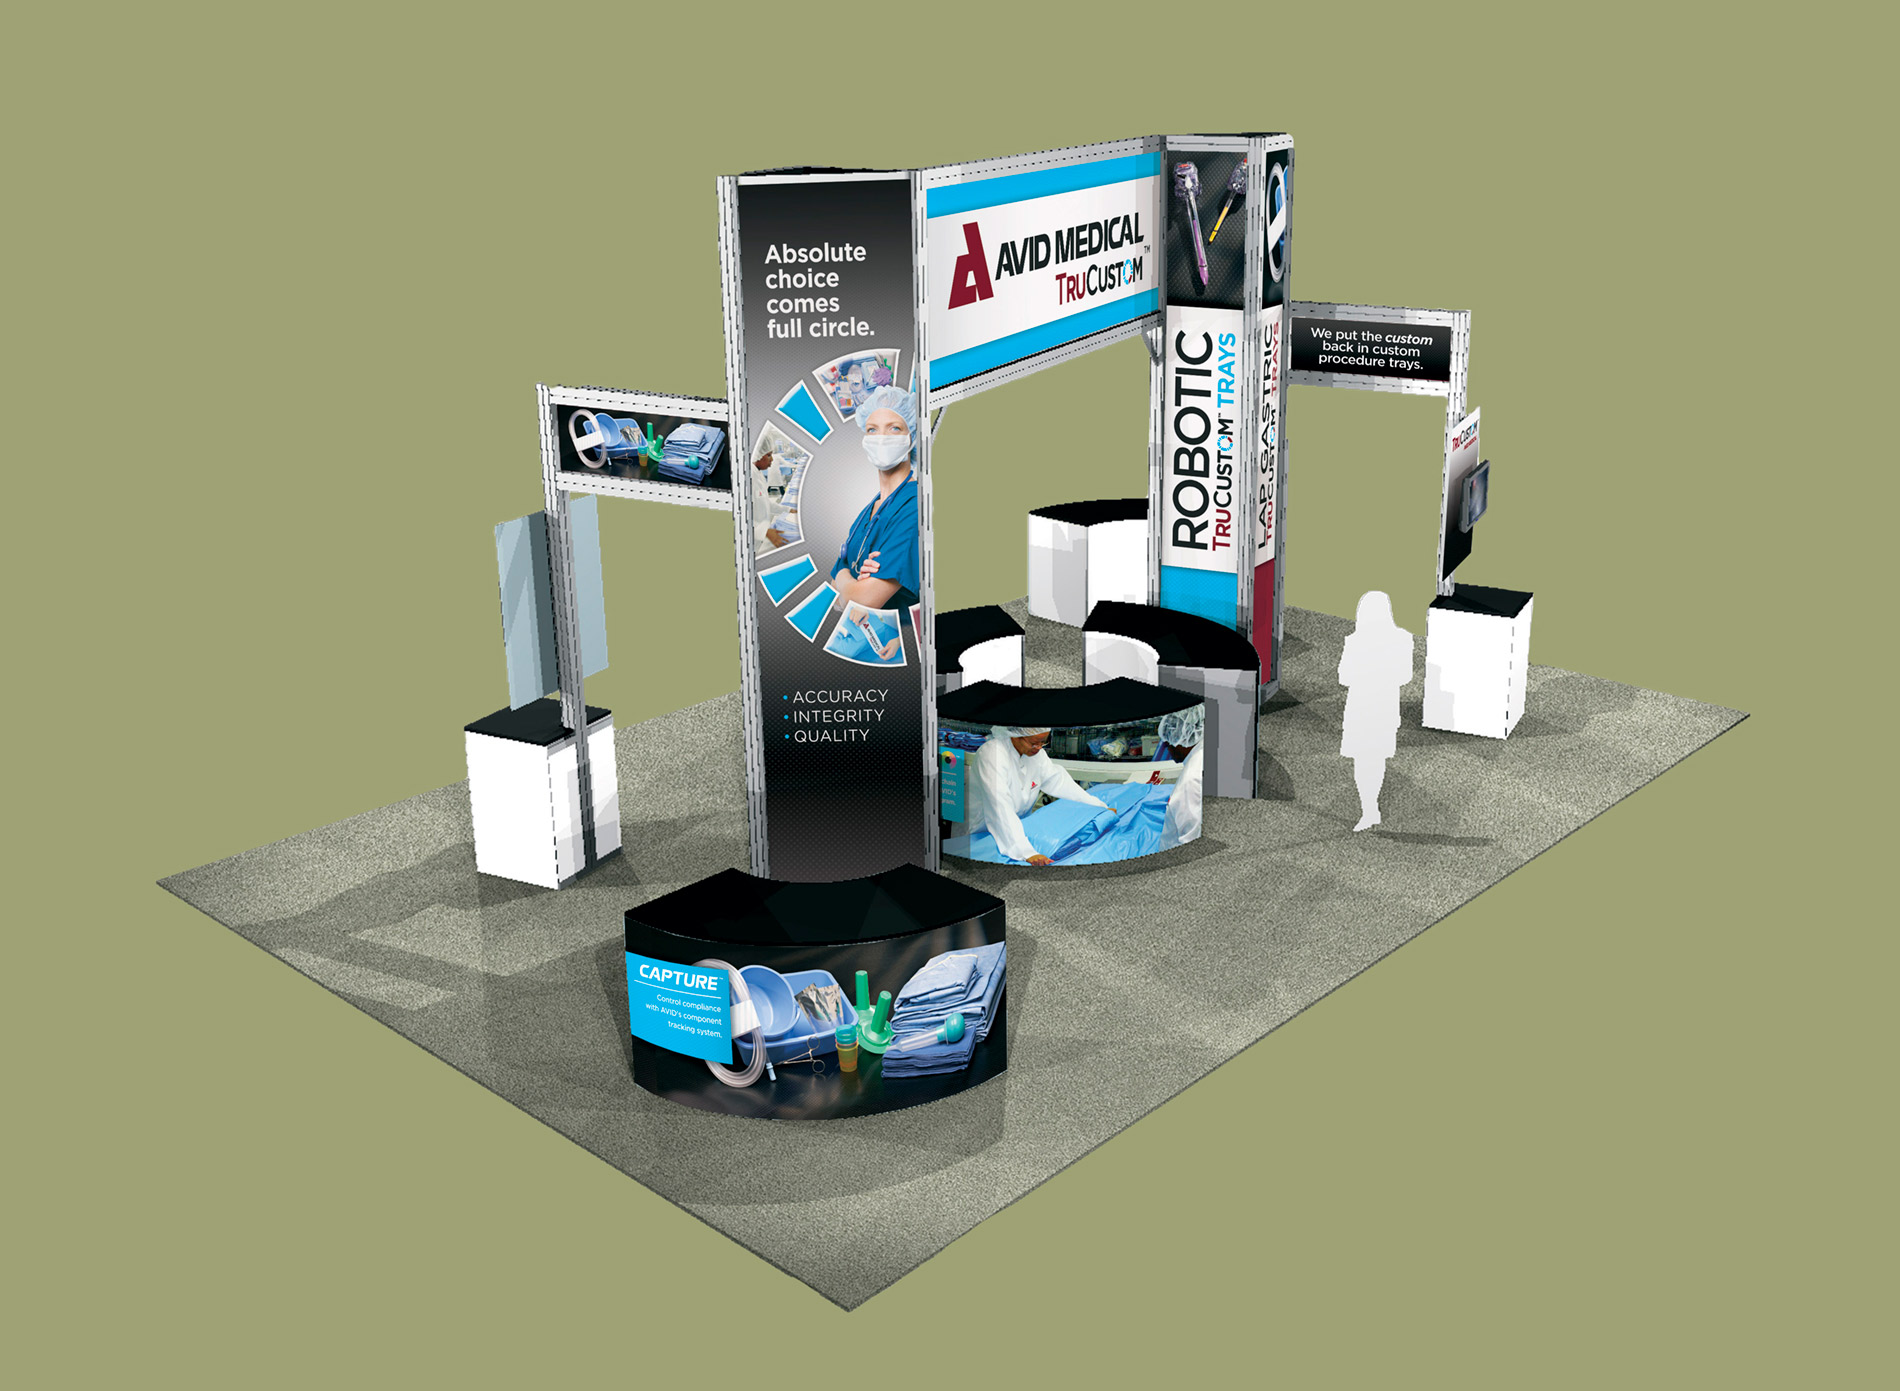 Trade Show Booth Graphics : Avid trade show booth design graphics howell creative group